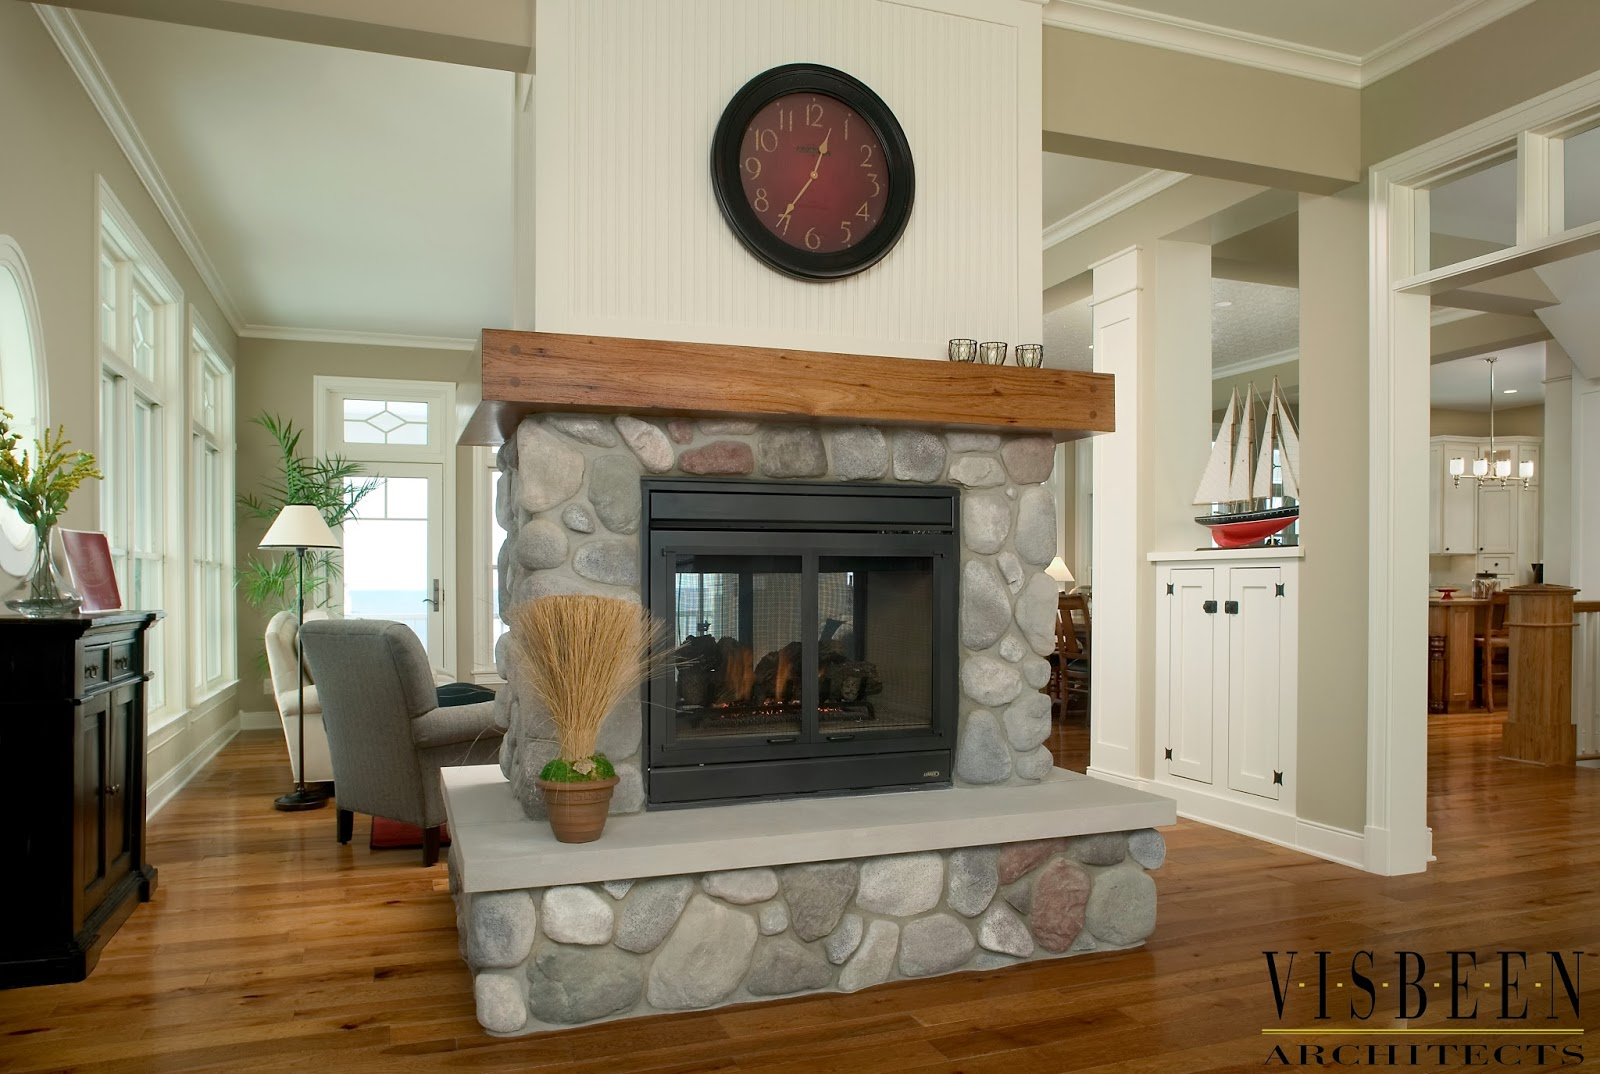 10 Spectacular Fireplace In Center Of Room House Plans 13015